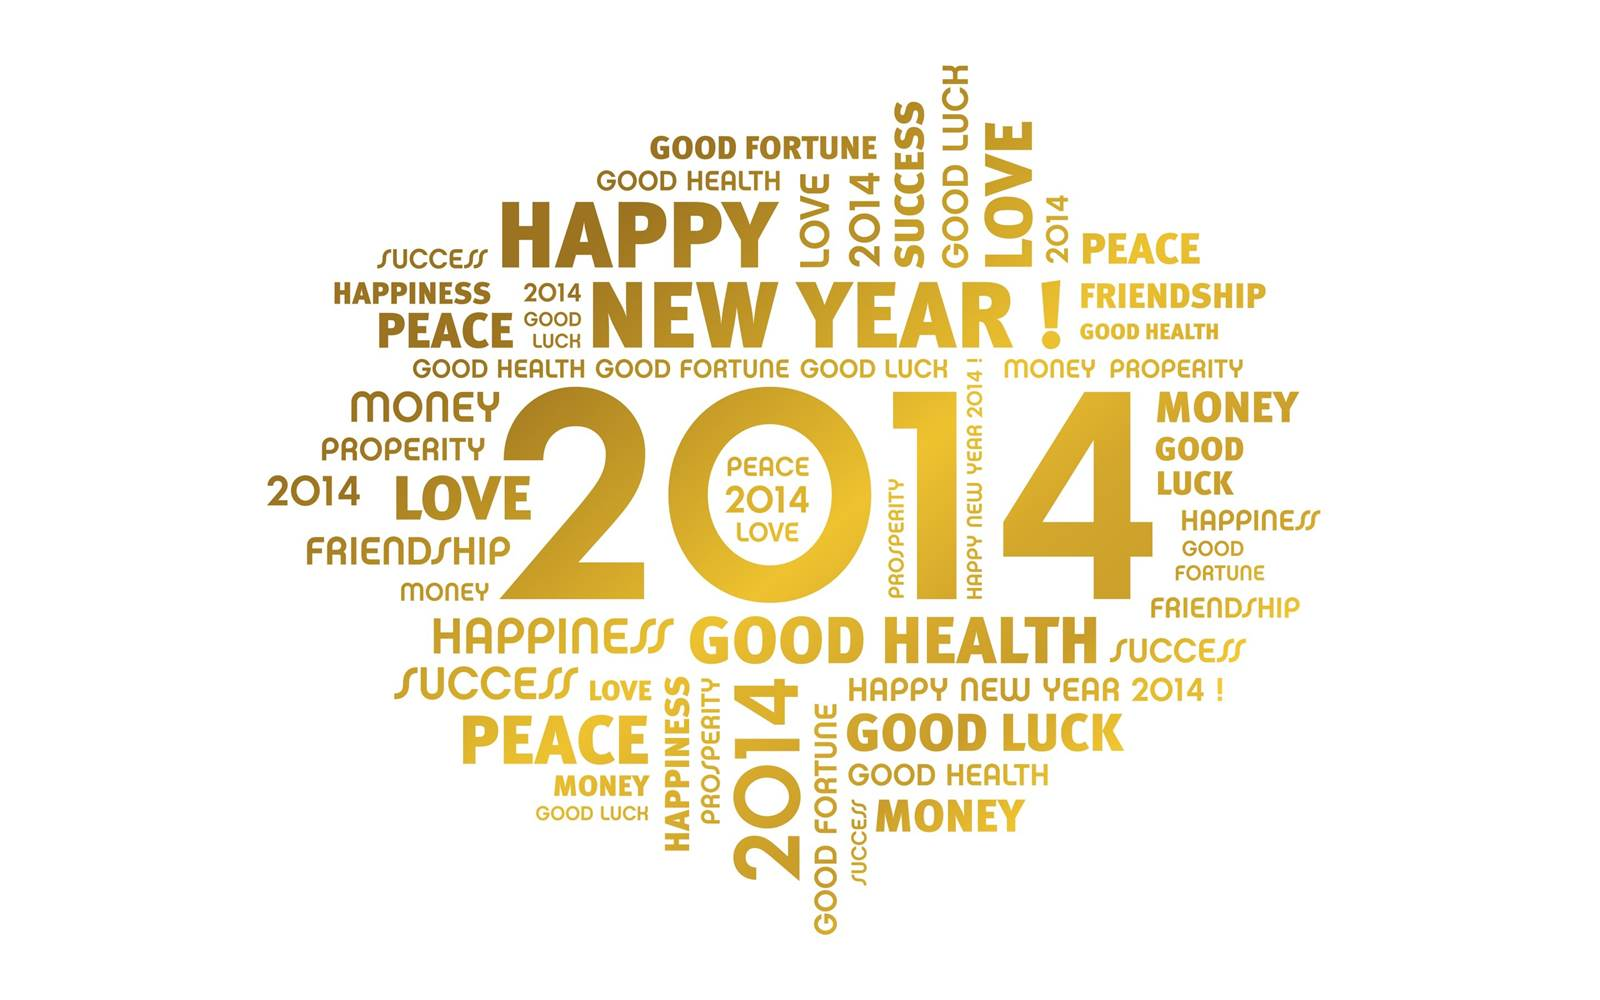 Happy new year 2014 wallpapers greeting cards xcitefun happy new year 2014 wallpapers greeting cards m4hsunfo